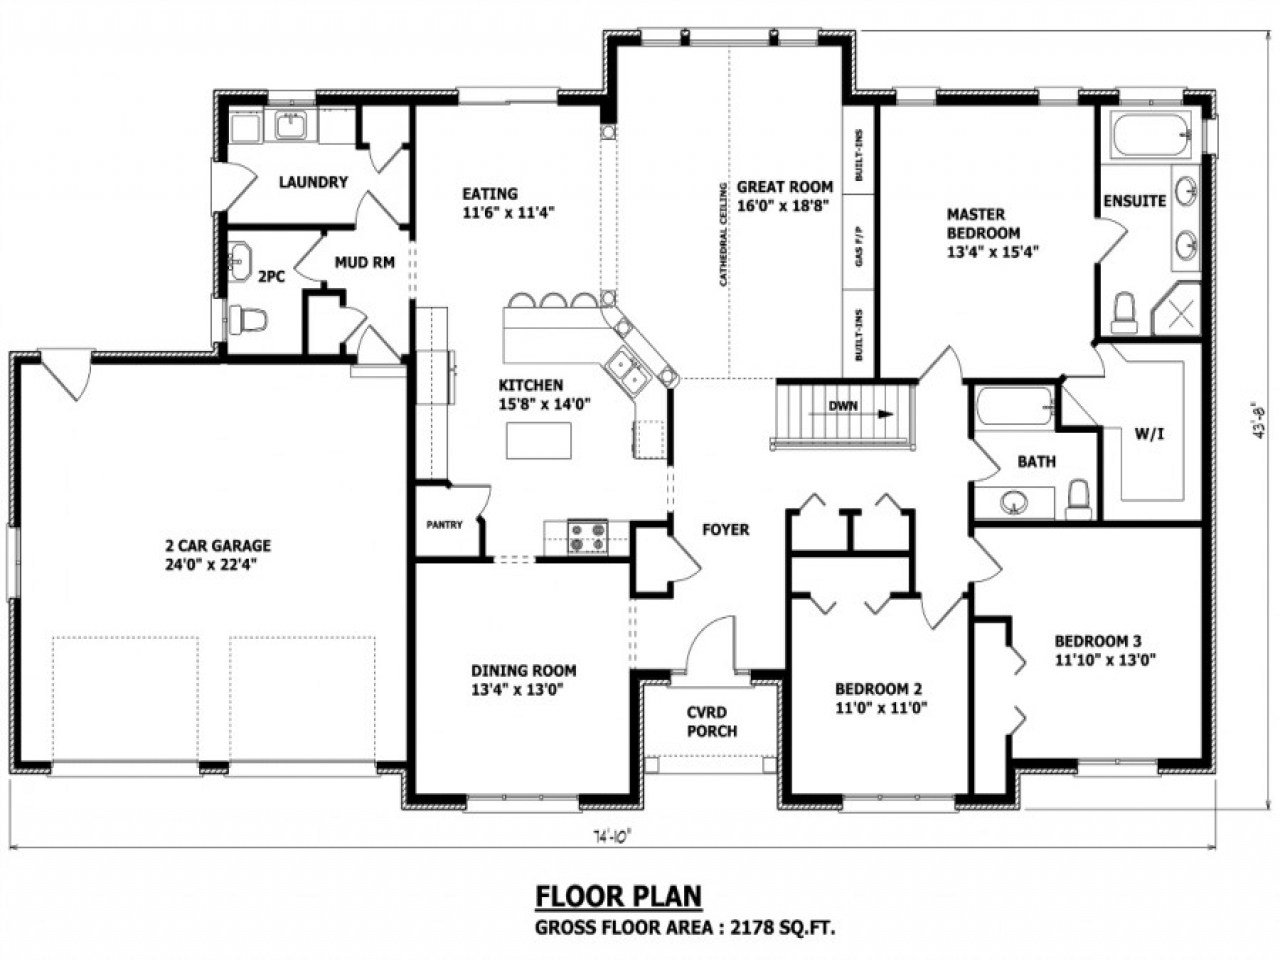 Best Custom Homes Floor Plans House Design 7 8 Bedroom Home Floor Plans Unique Bungalow House Plans With Pictures